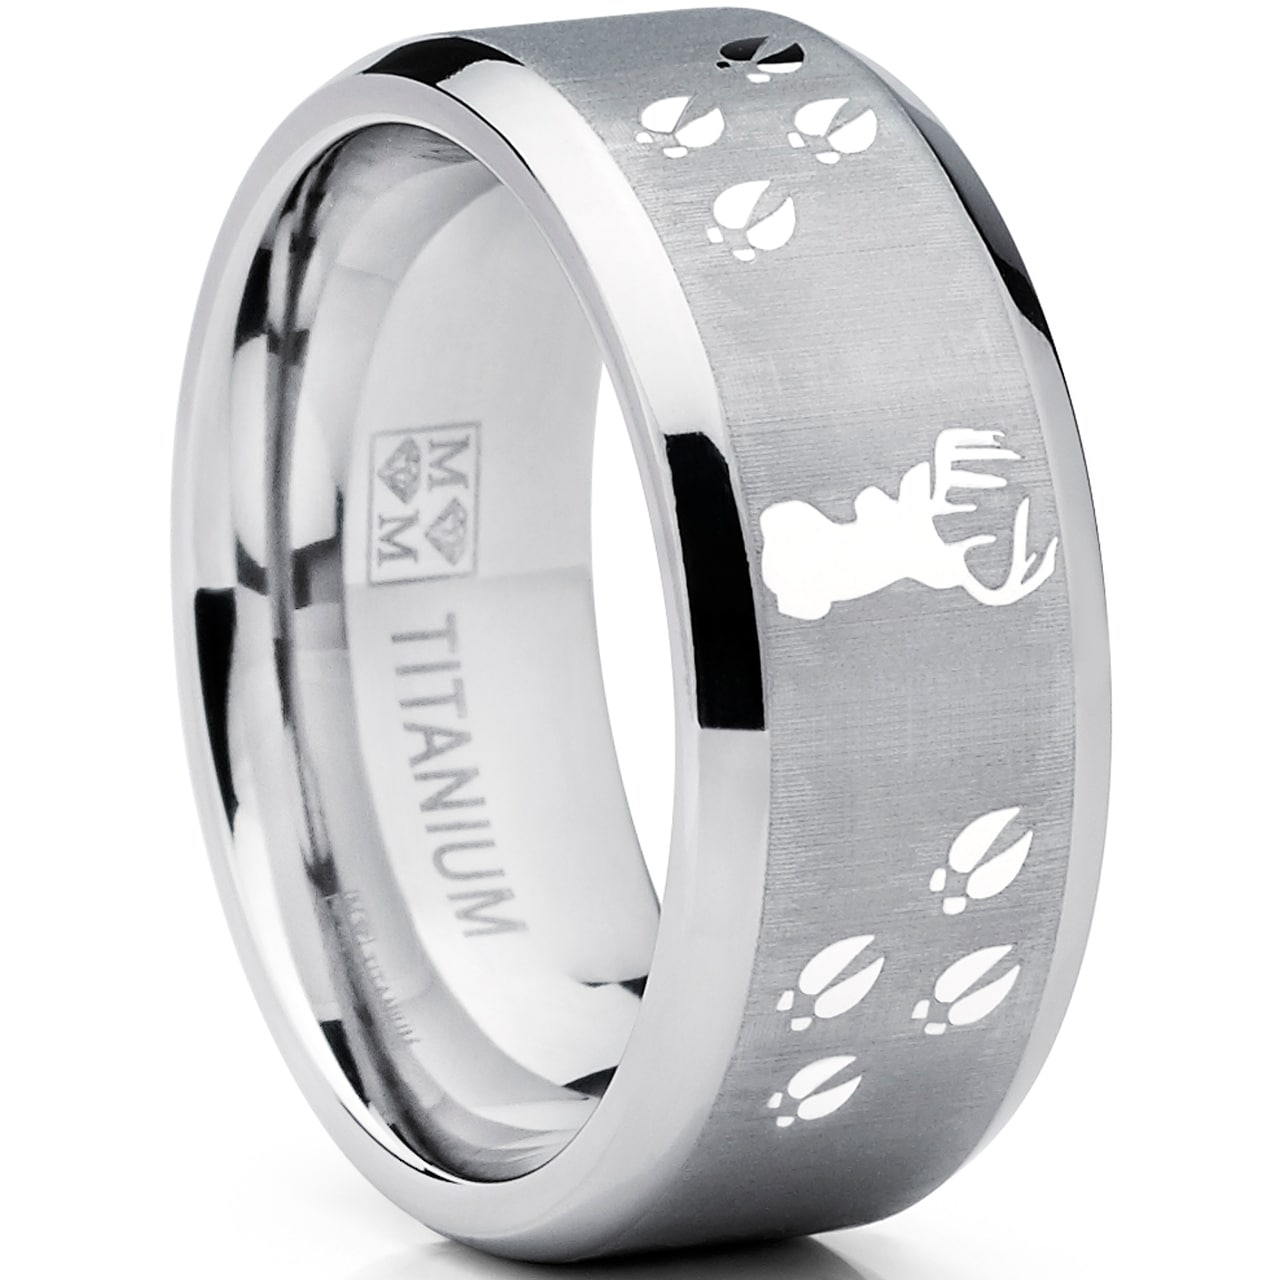 because mens men strong light jewelry it casavir titanium hard alternative bands particular is s and metal unique an how ring materials now as extensively in used of wedding